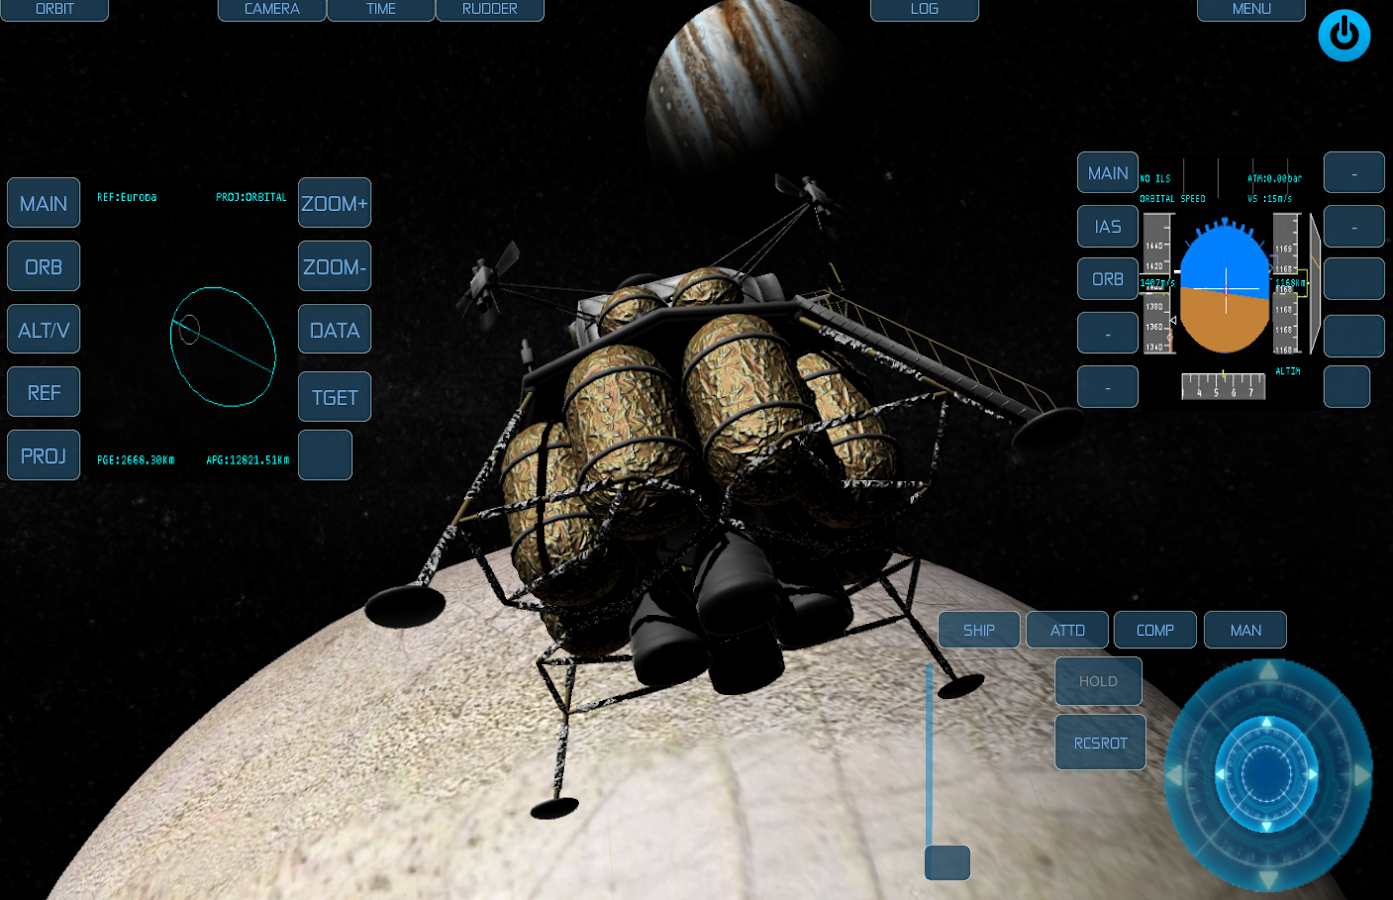 space shuttle simulator free online game - photo #8